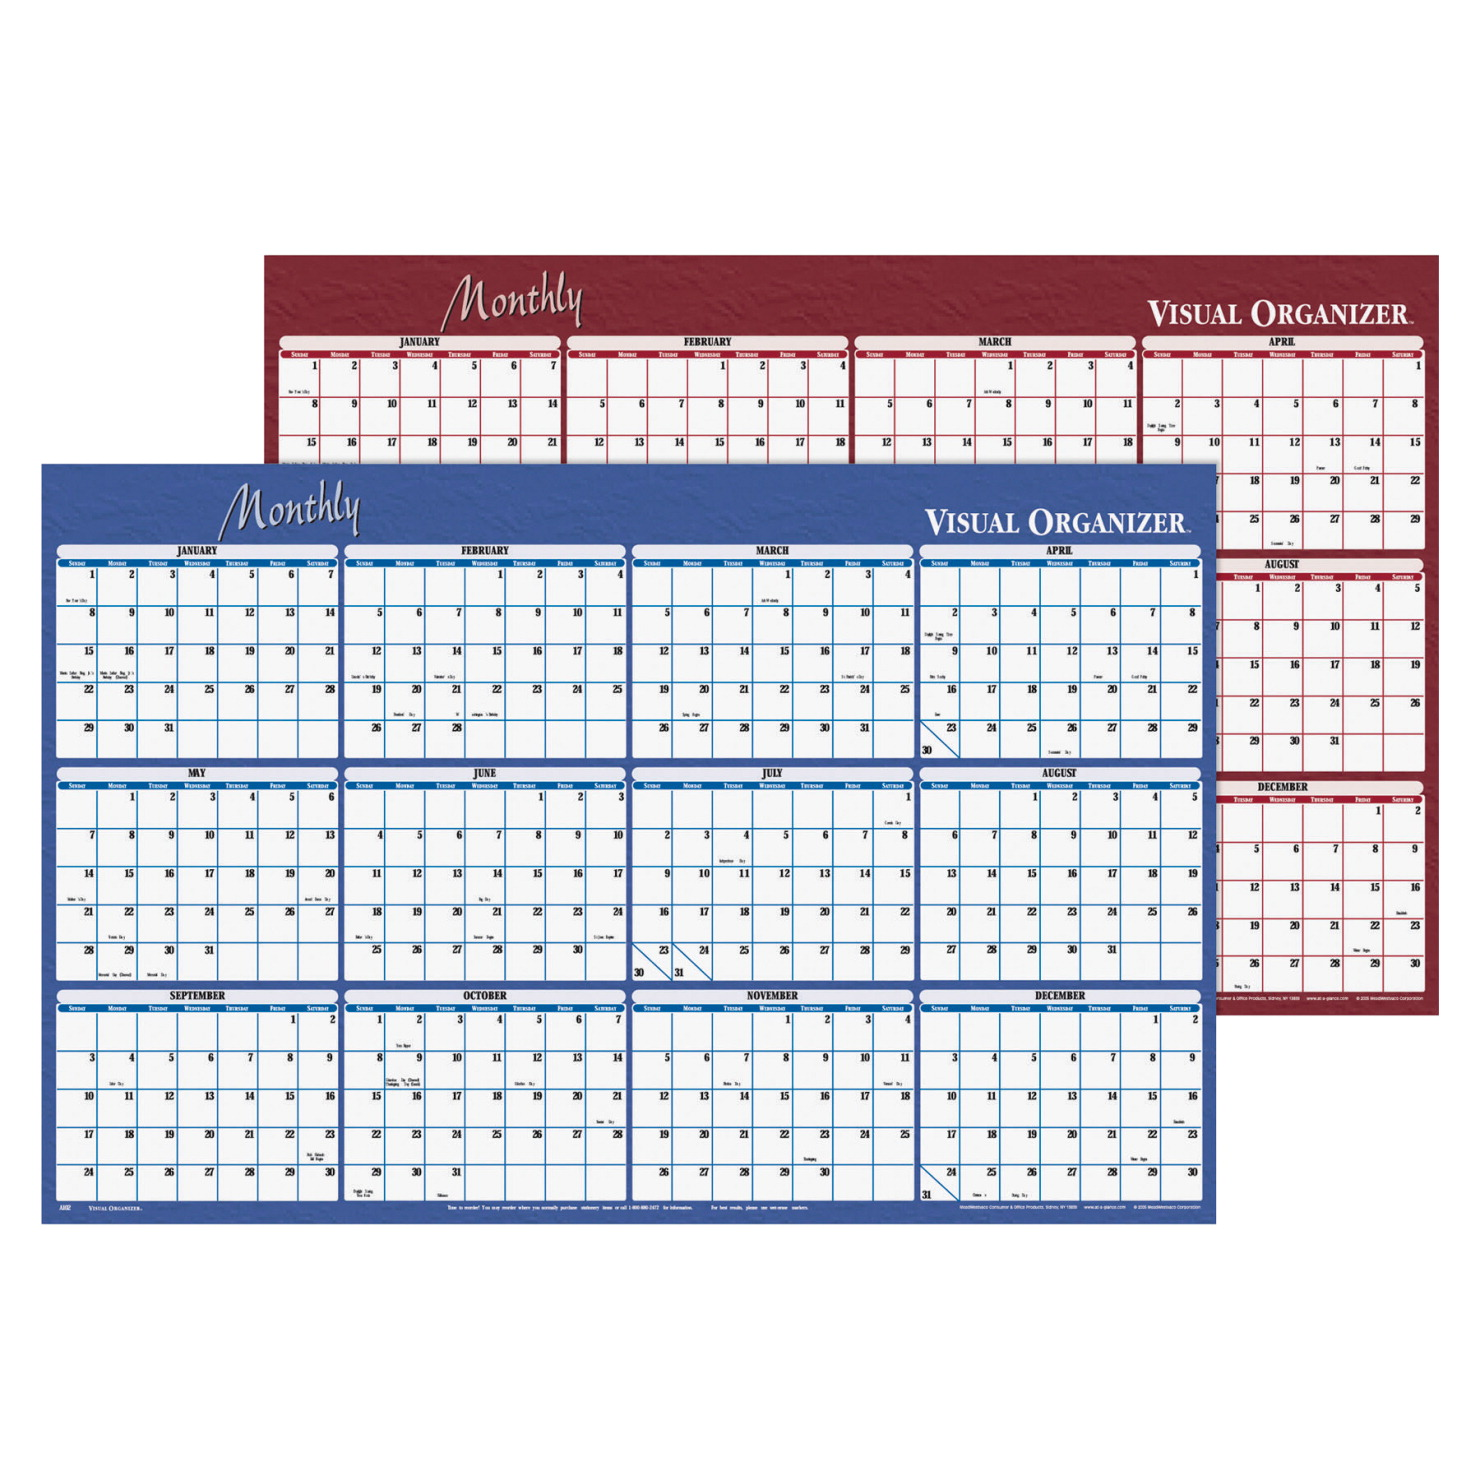 At-A-Glance Double Sided Erasable Organizer Calendar Planner, 24 X 36 in, 1-1/8 X 1-1/8 in, January - December, Blue/Burgundy